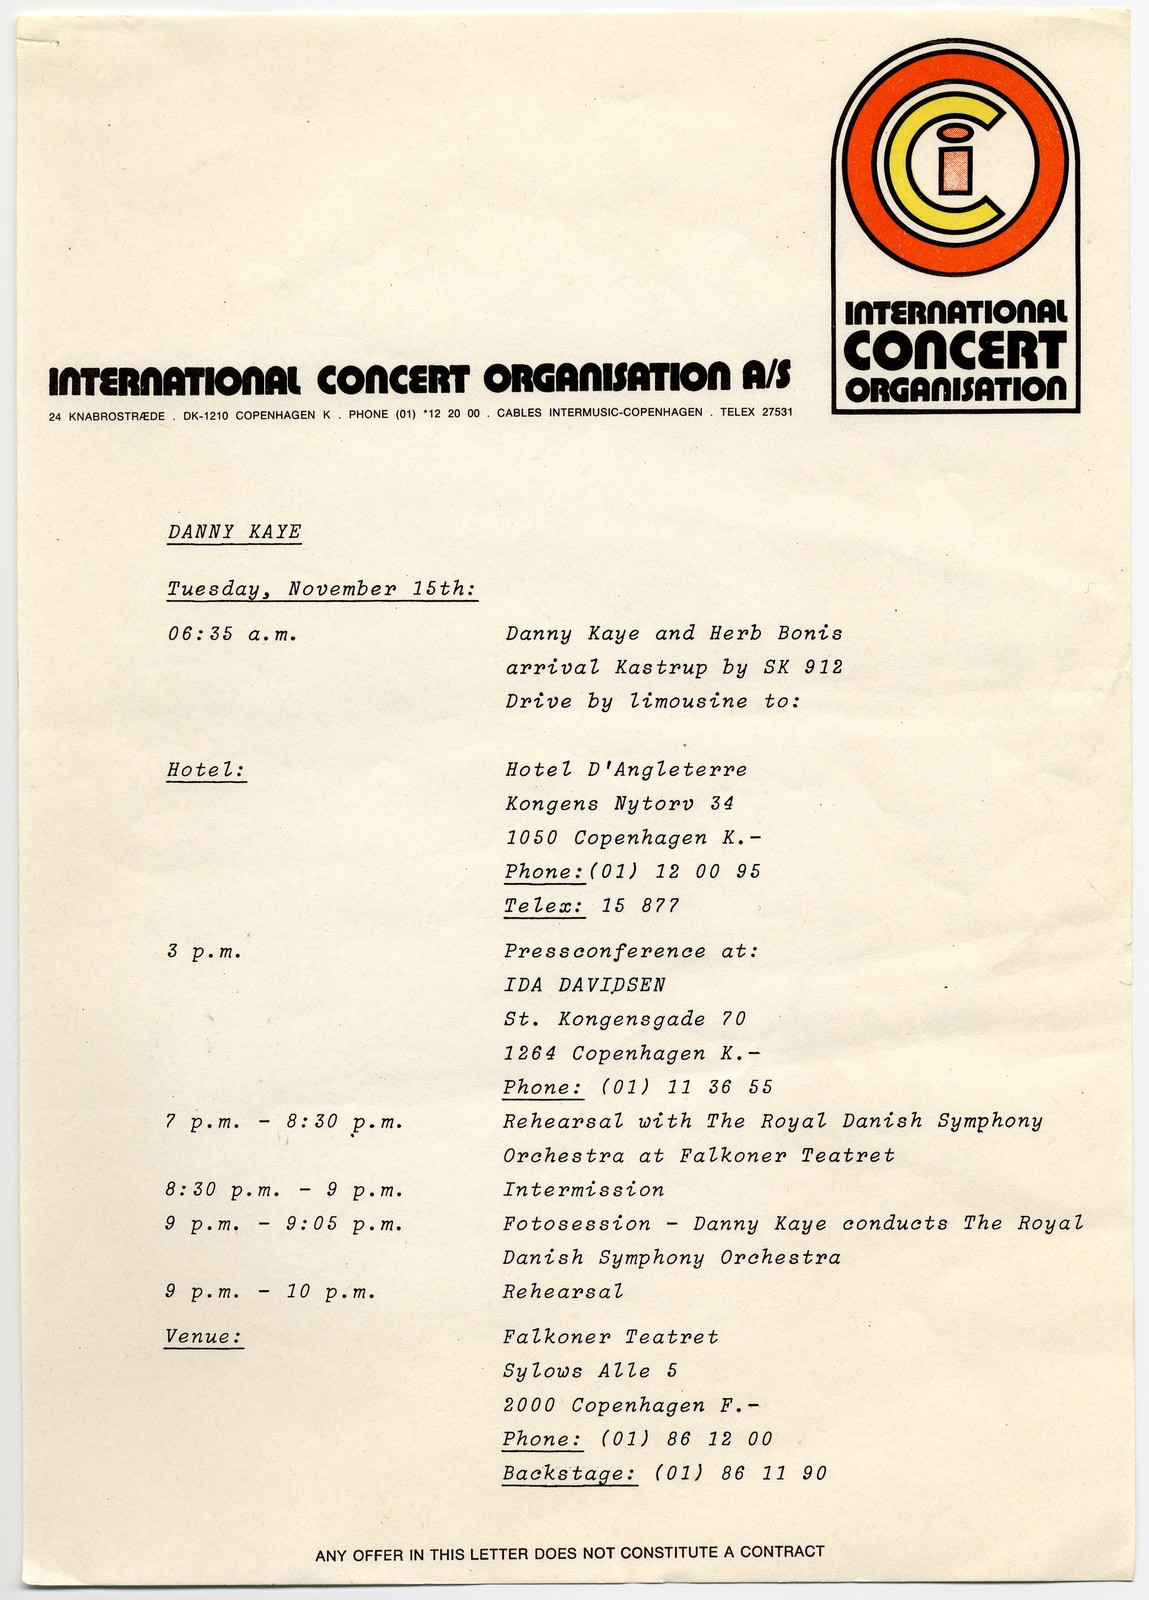 [ Danny Kaye schedule during a 1977 trip to Copenhagen to conduct the Royal Philharmonic]